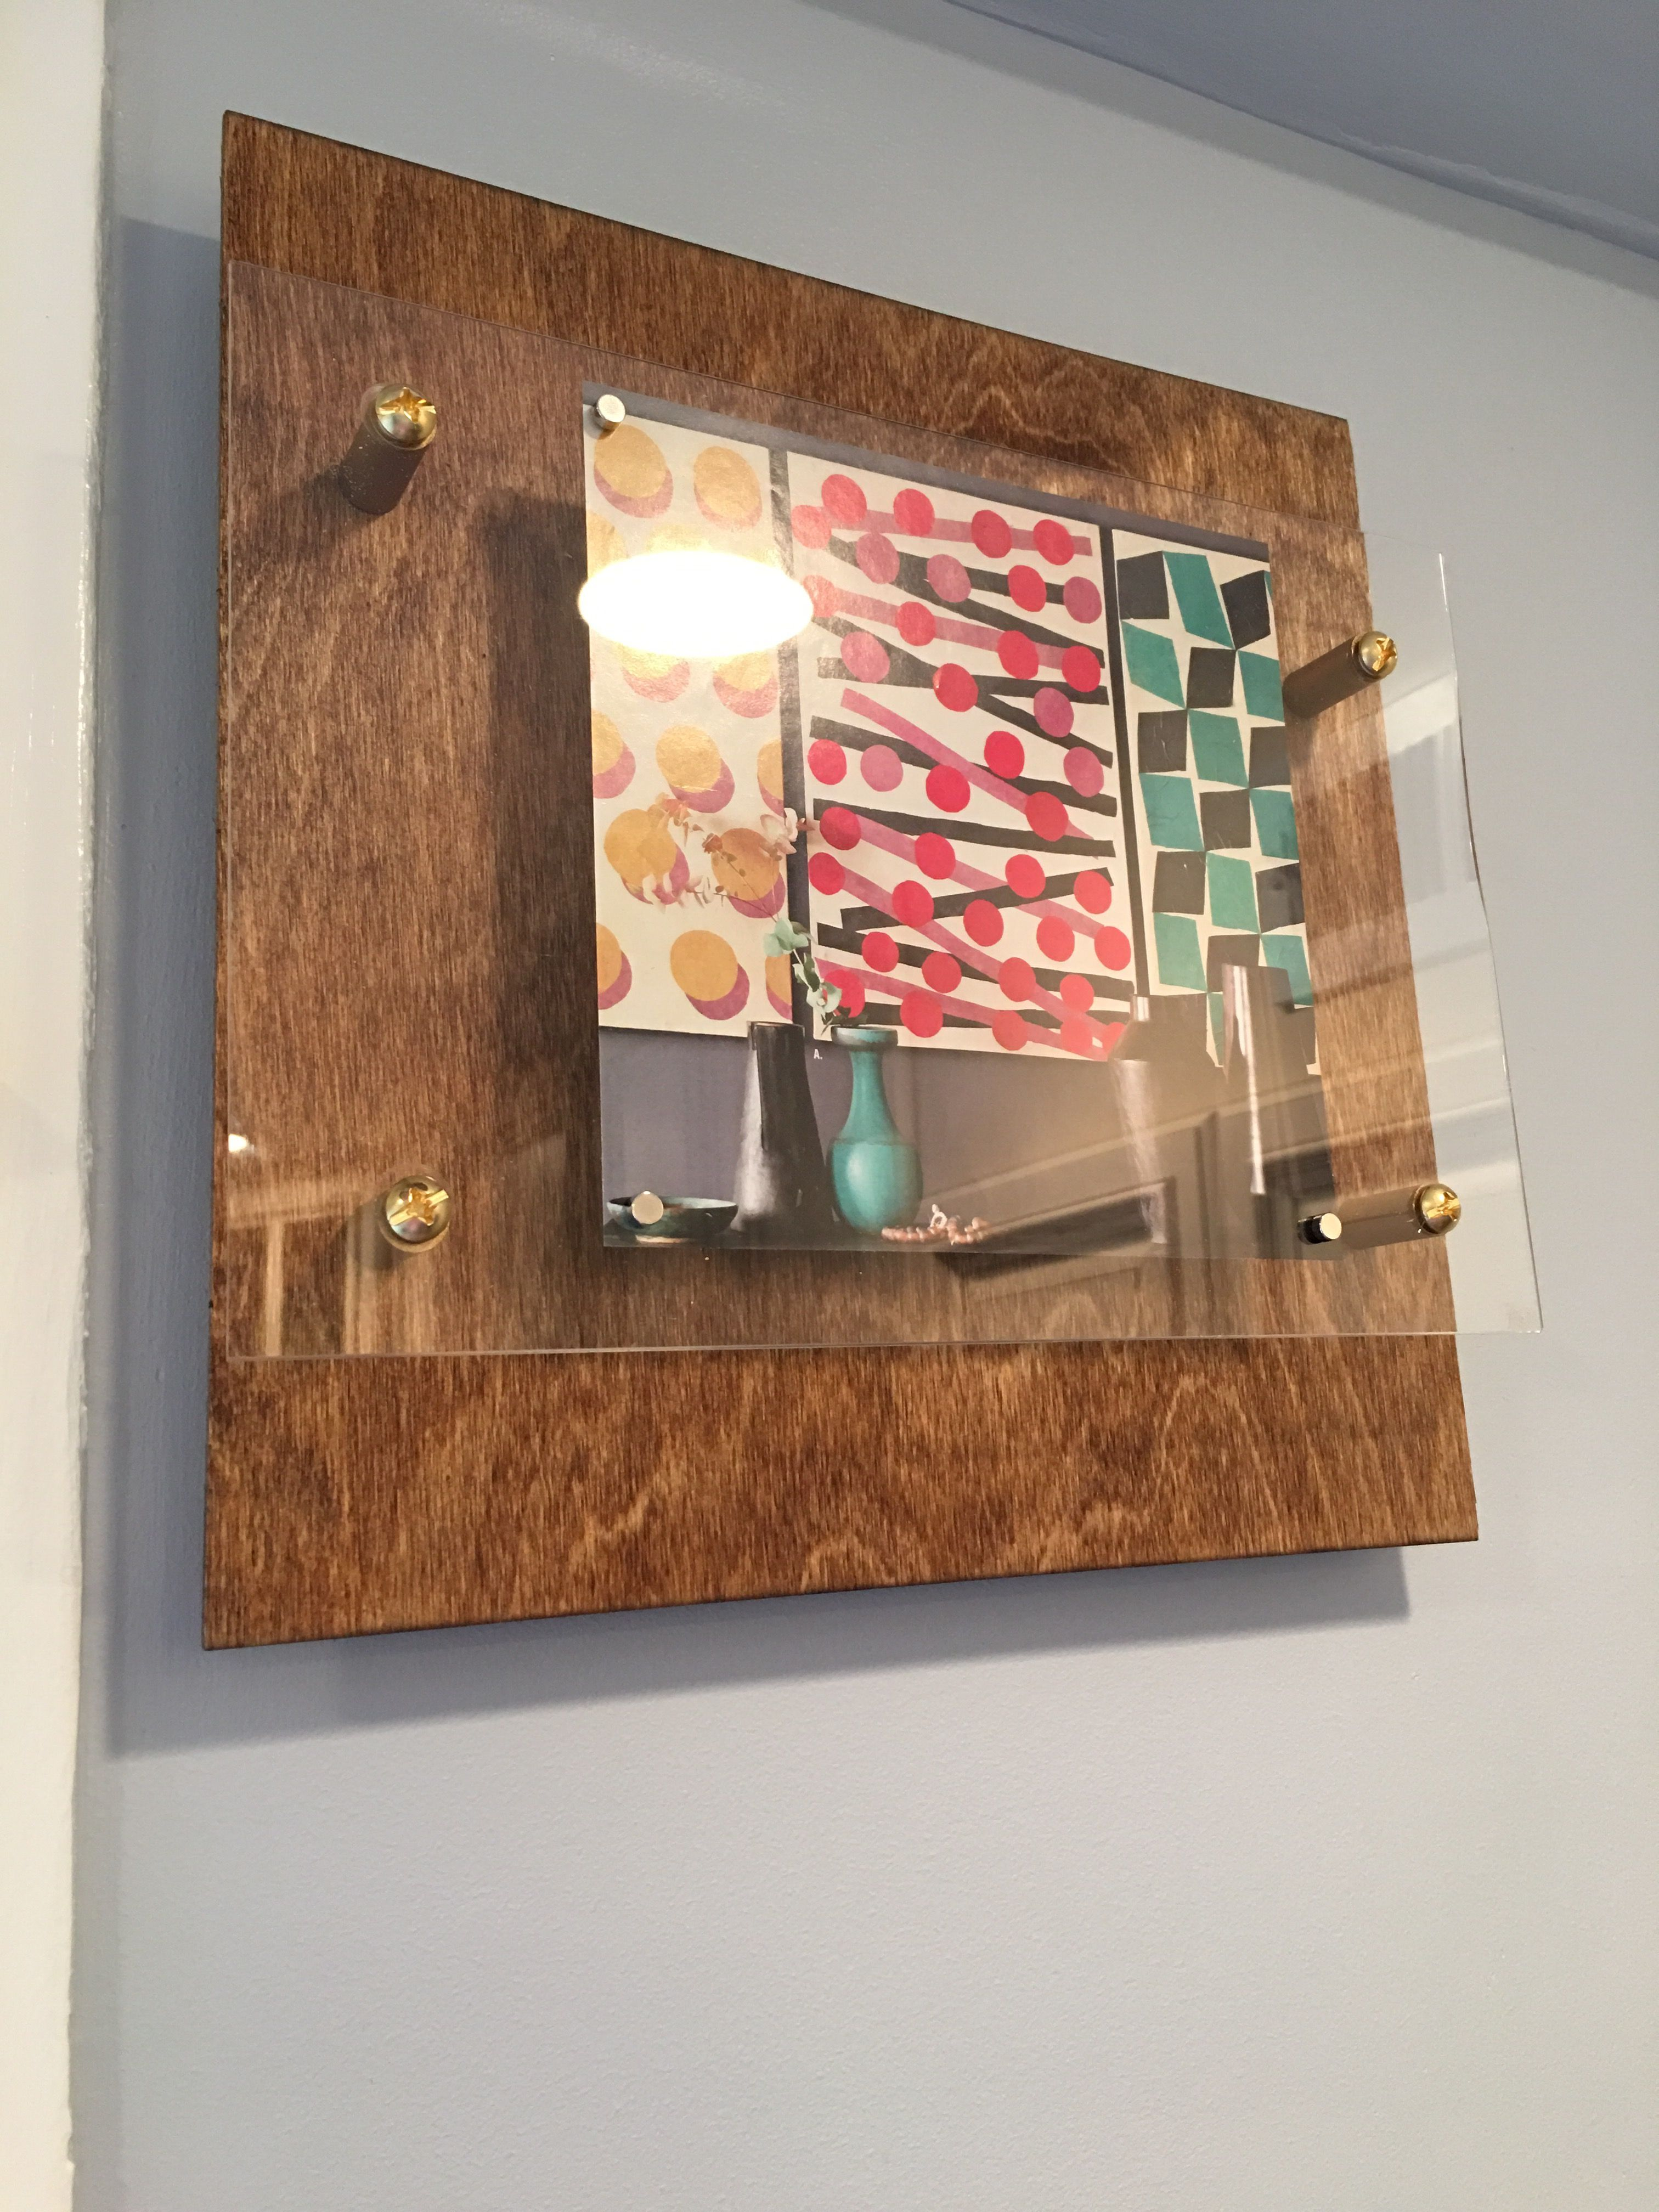 Wood Floating Display Frames in the Kitchen Diy Frame Attaching